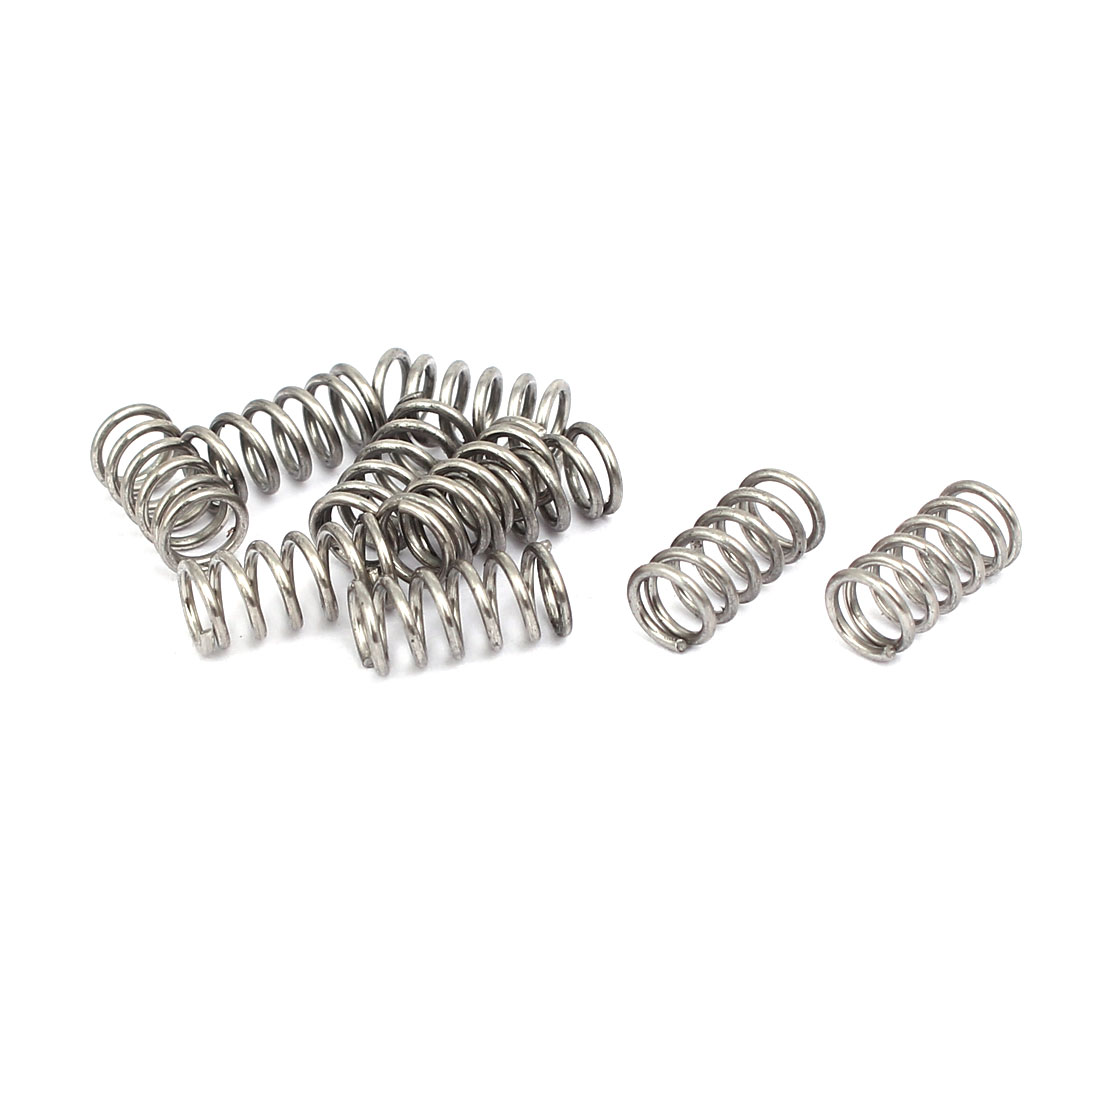 0.7mmx5mmx10mm 304 Stainless Steel Compression Springs Silver Tone 10pcs